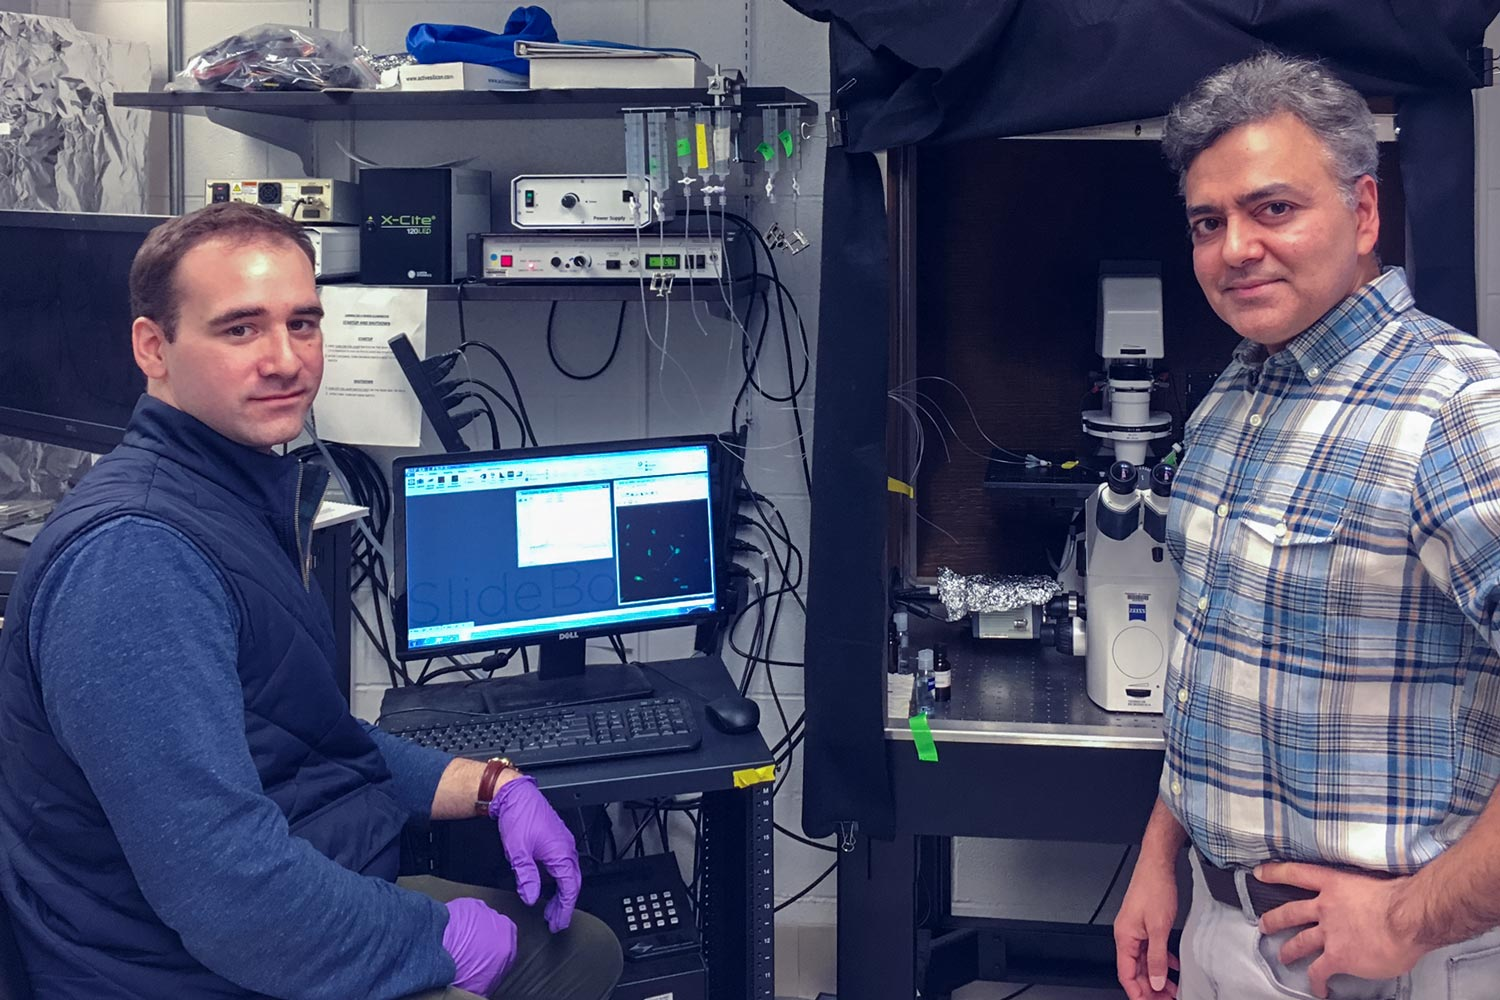 Researchers Michael Schappe, left, and Bimal Desai of UVA's School of Medicine may have found an end run around one barrier that has prevented effective treatment for neurodegenerative diseases.